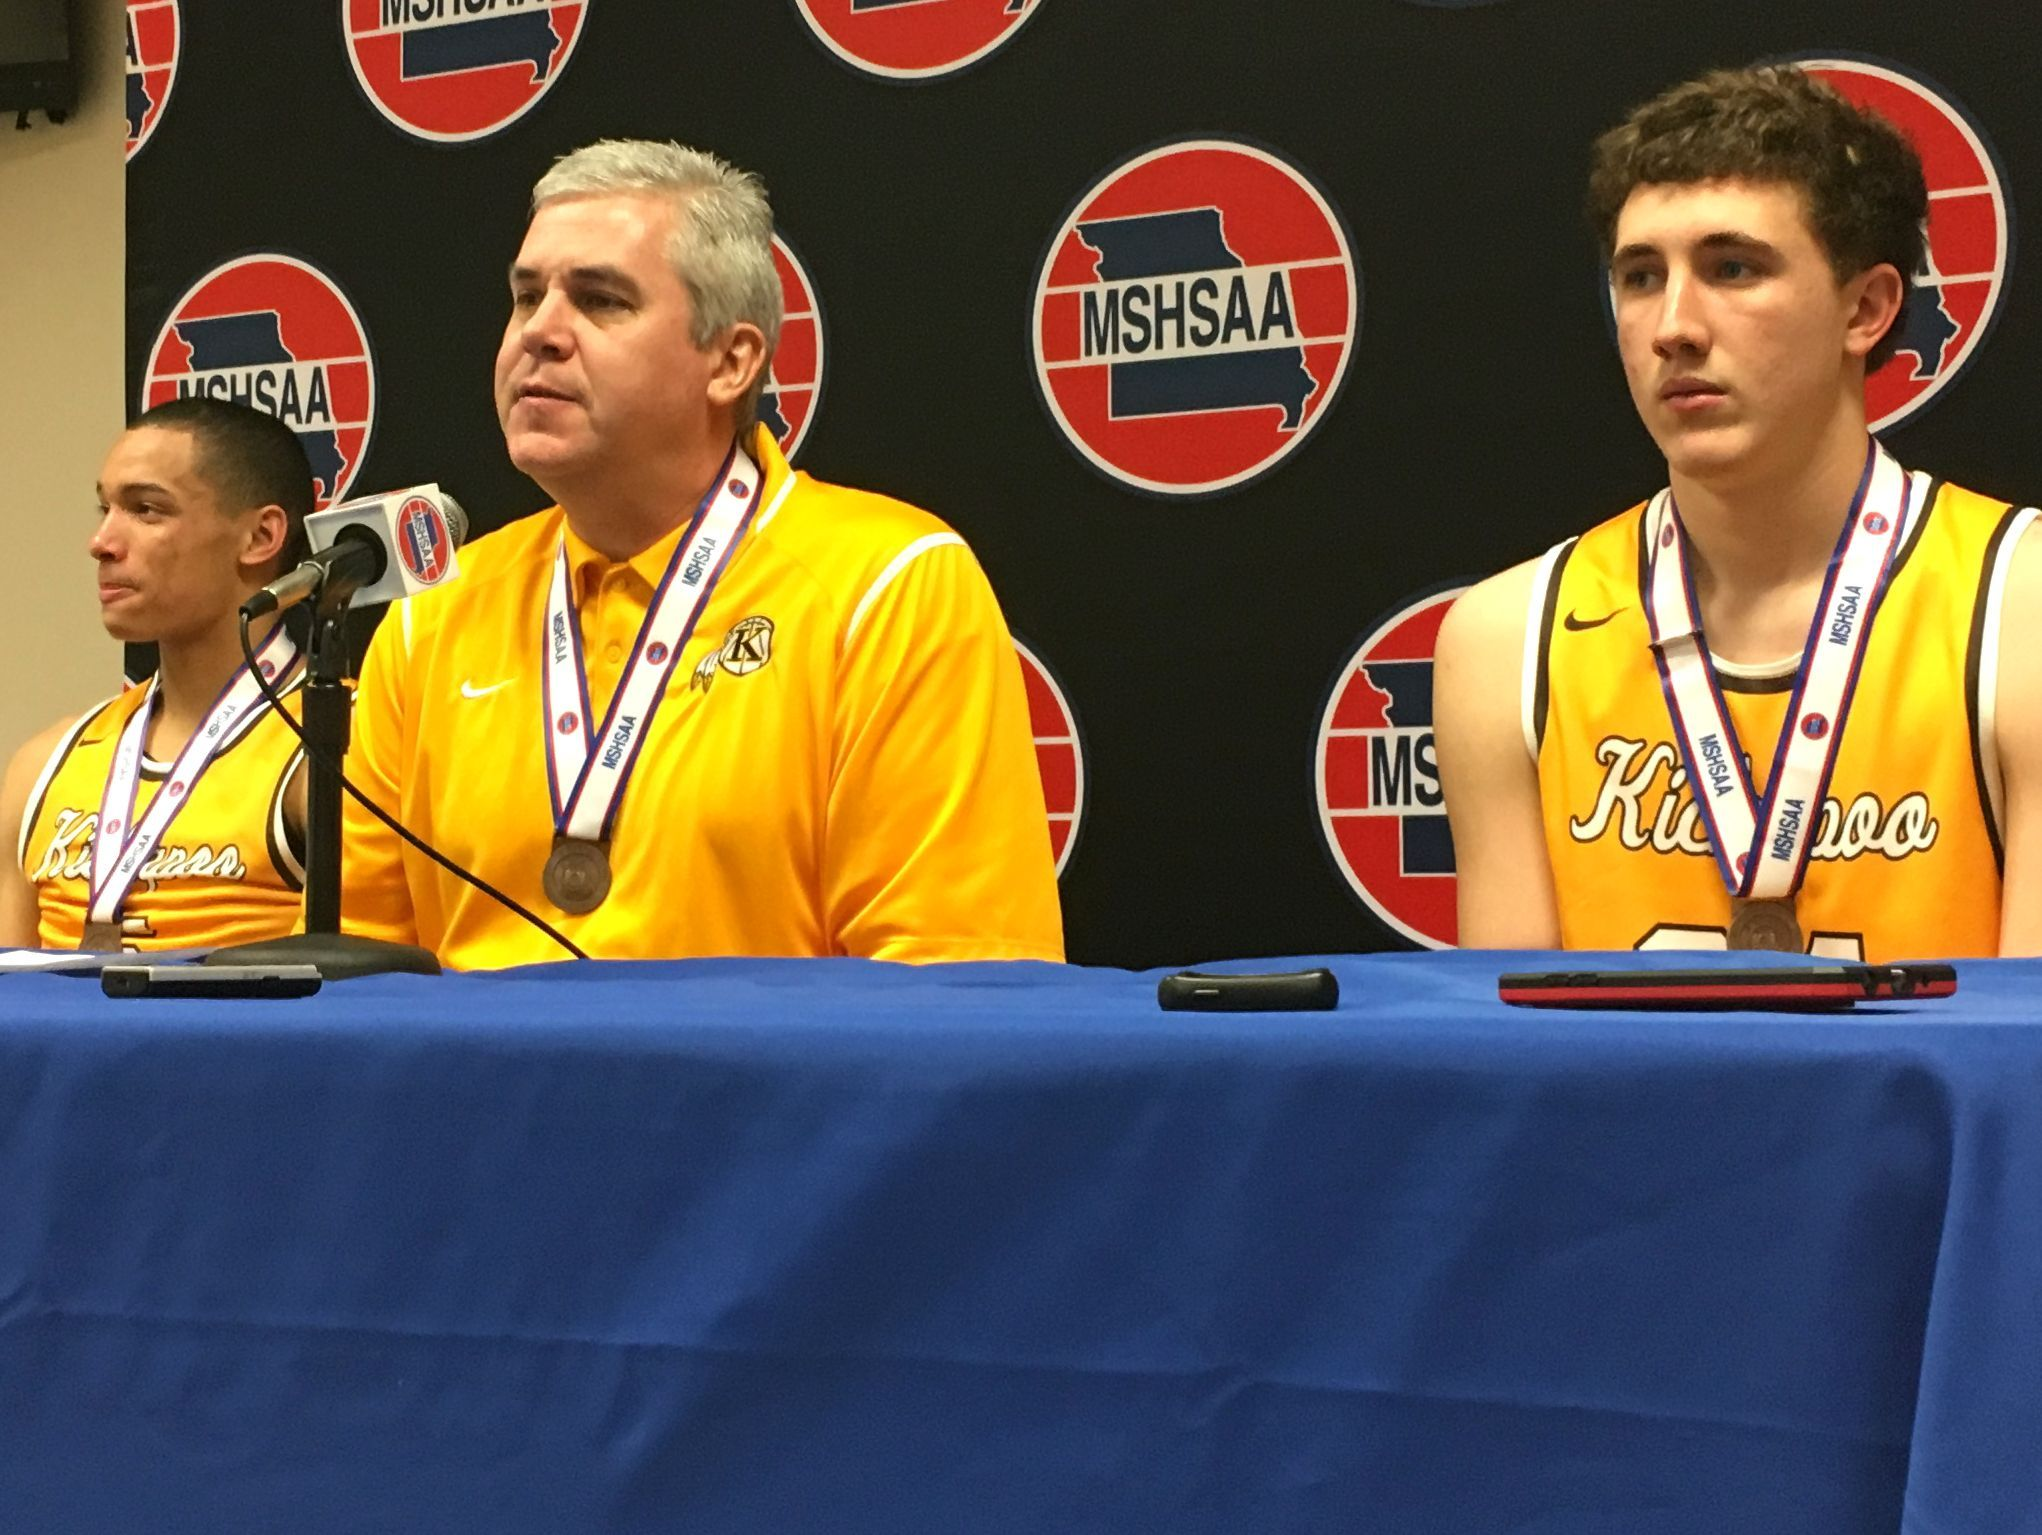 From left, Kickapoo senior Cameron Davis, boys basketball coach Dick Rippee and senior Jared Ridder address reporters following an 89-78 win over Chaminade at Mizzou Arena Saturday, March 18, 2017.